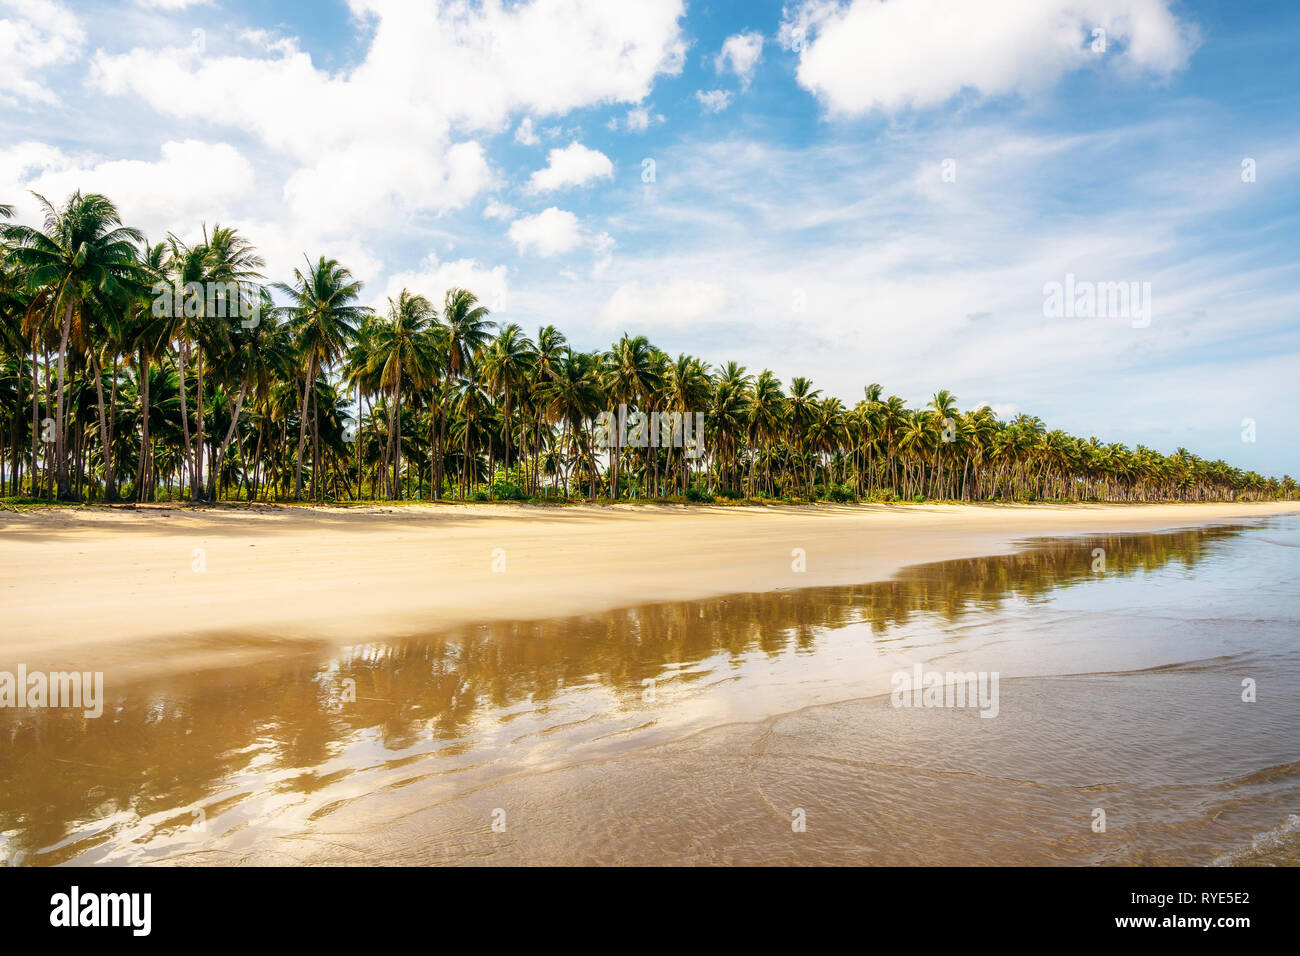 Secluded Long Beach at San Vincente with reflection in sea, Palawan, Philippines - Stock Image